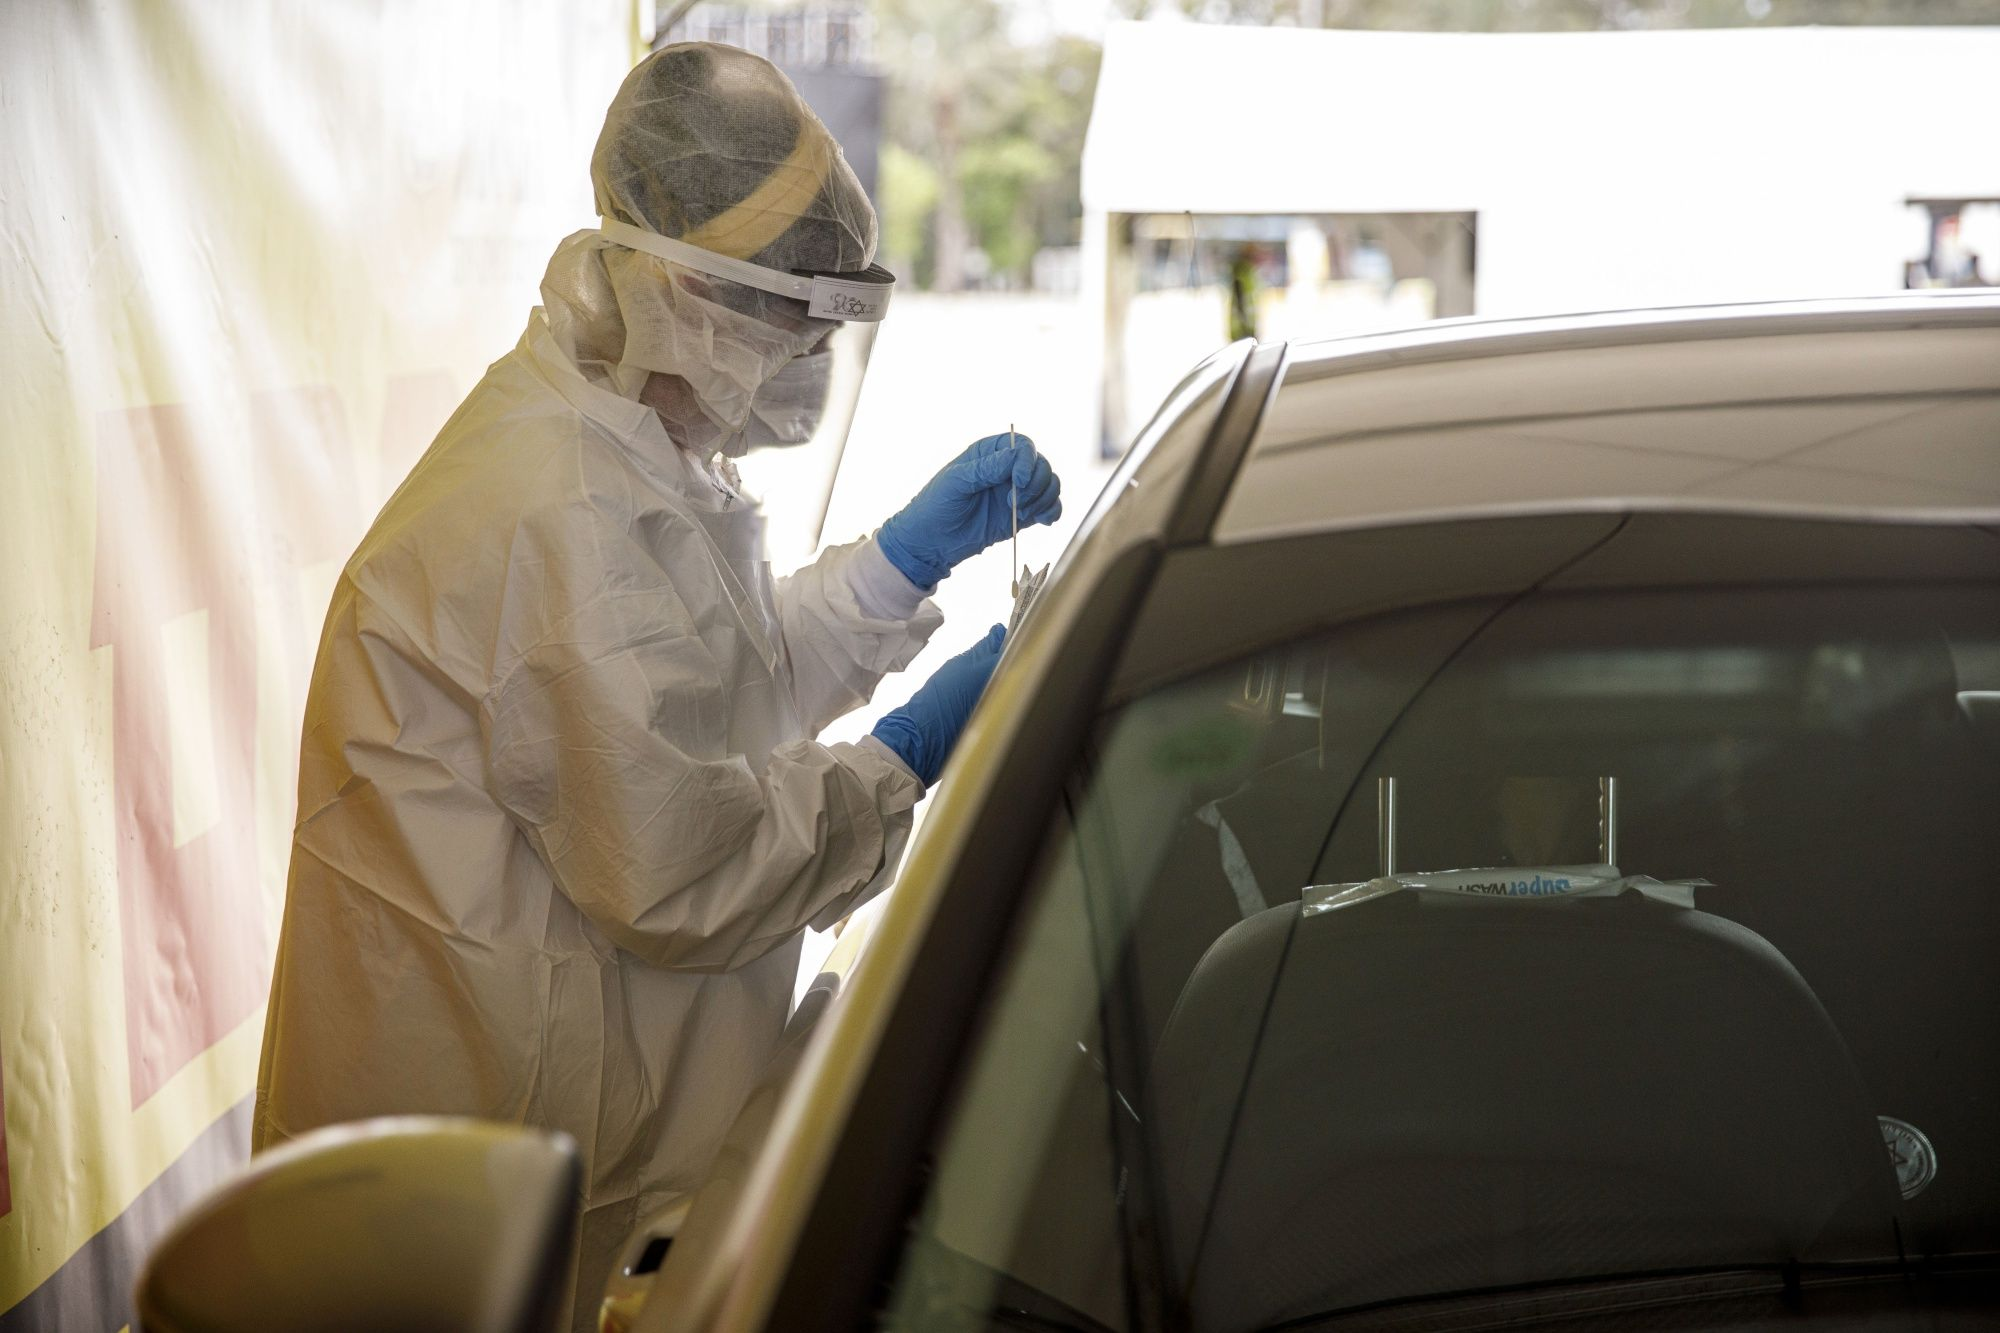 Israel Eyes Nearly 50% Surge in Aid to Combat Virus Fallout